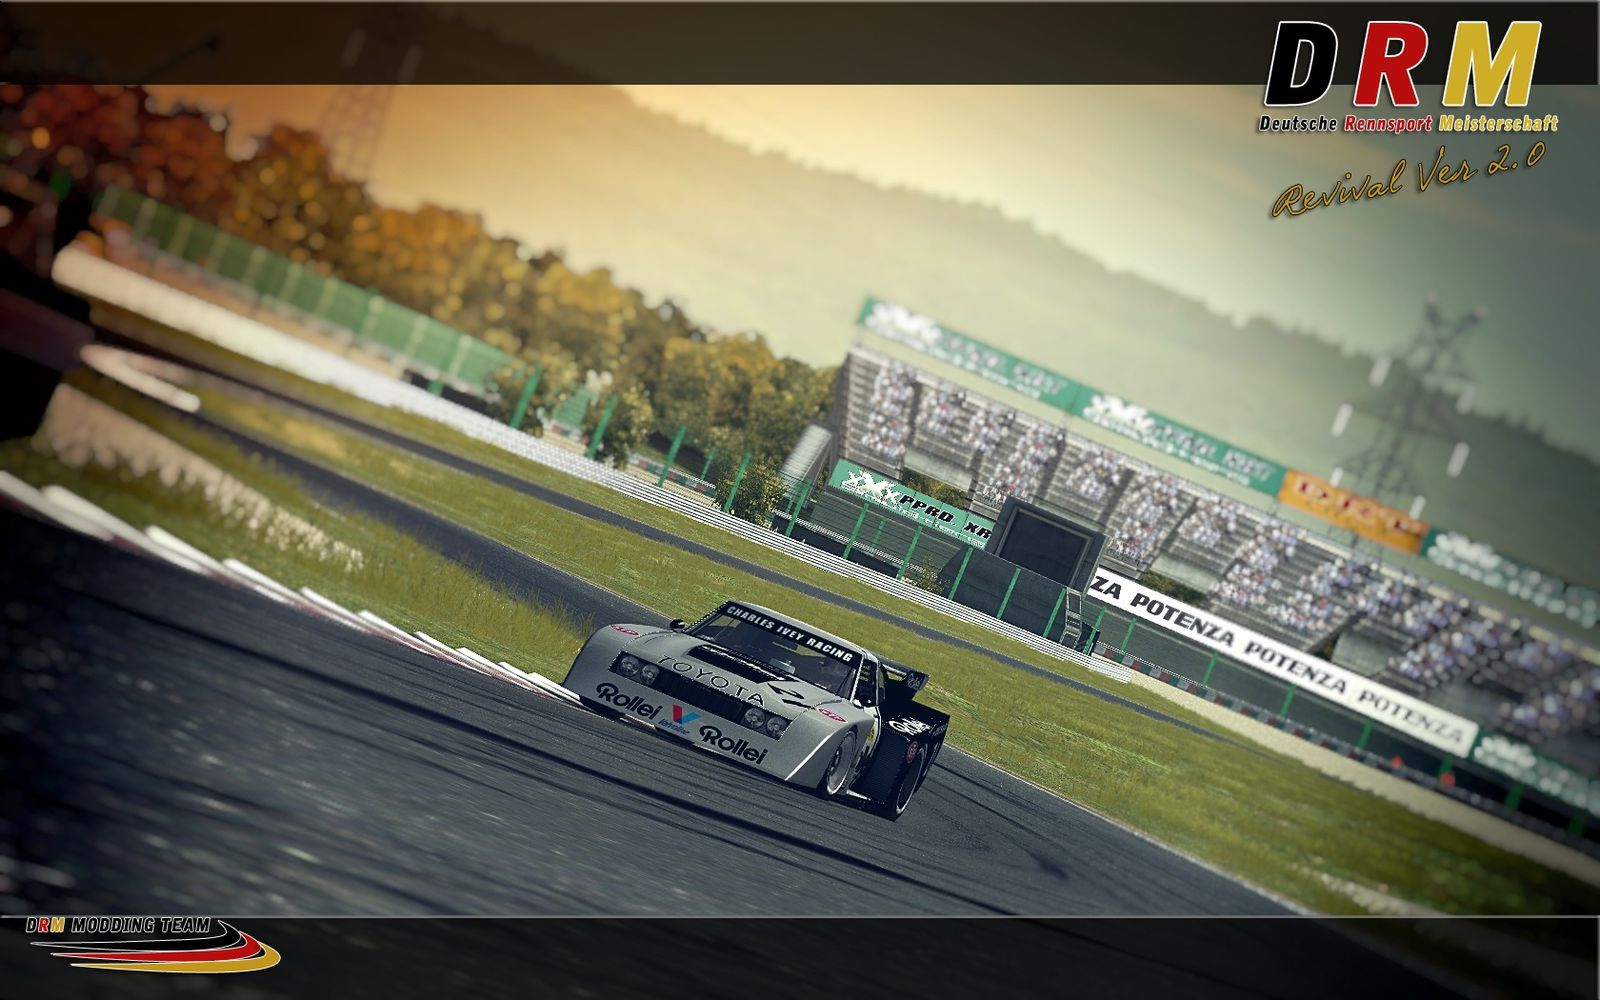 rFactor Mod DRM Revival 2 0B disponible ! - The Racing Line